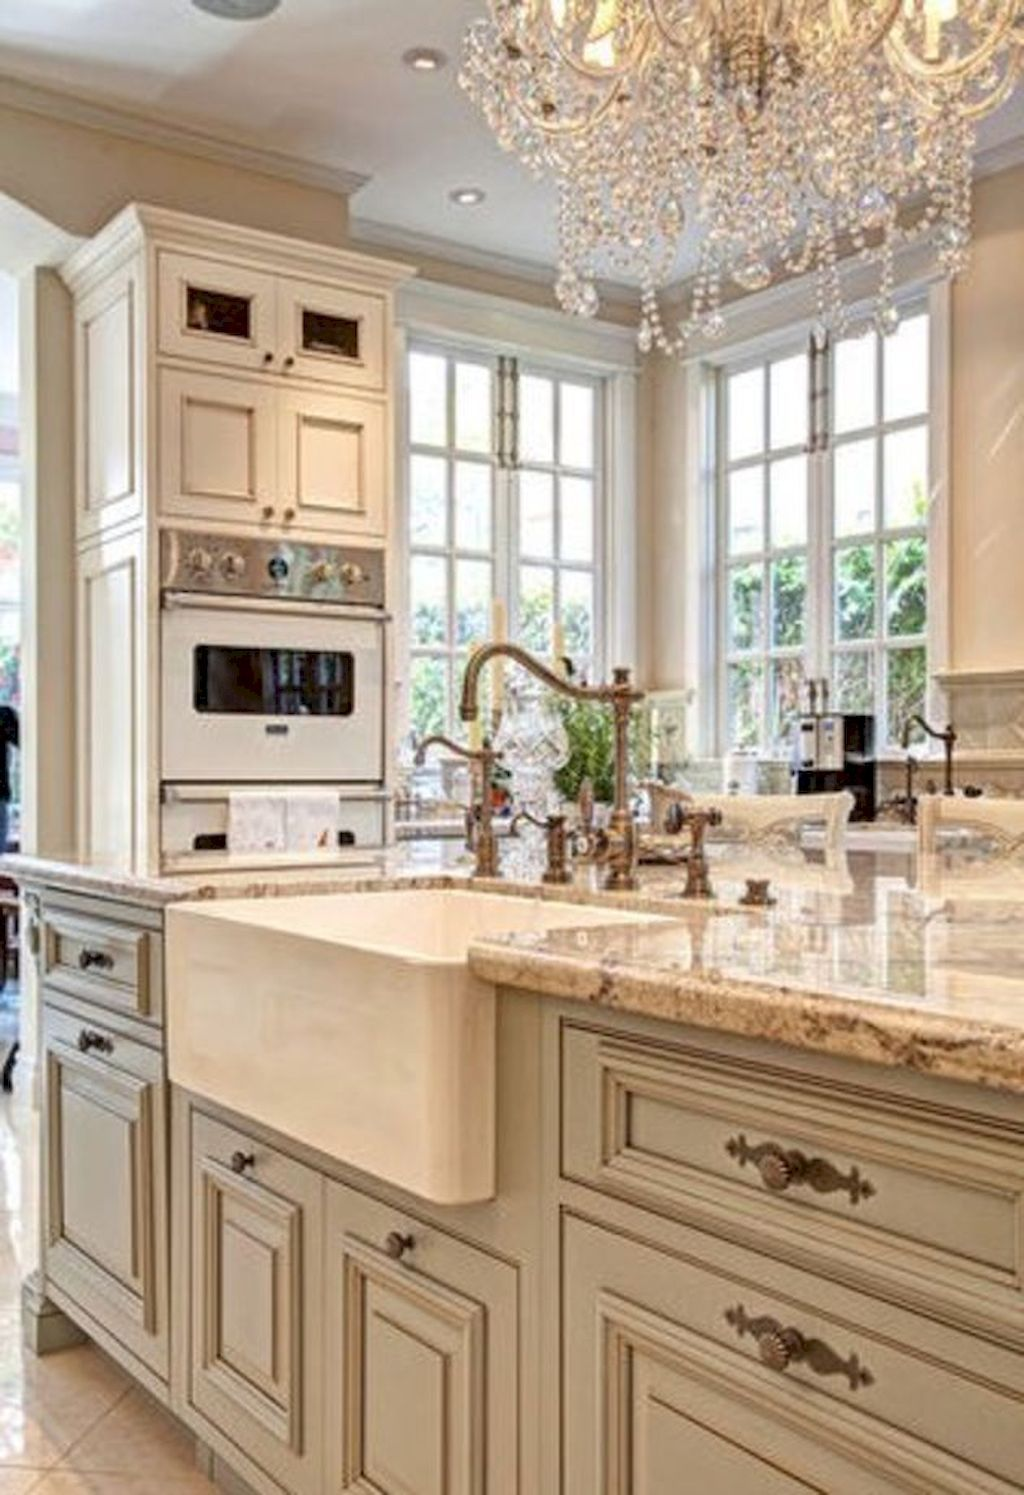 46 Incredible French Country Kitchen Design Ideas